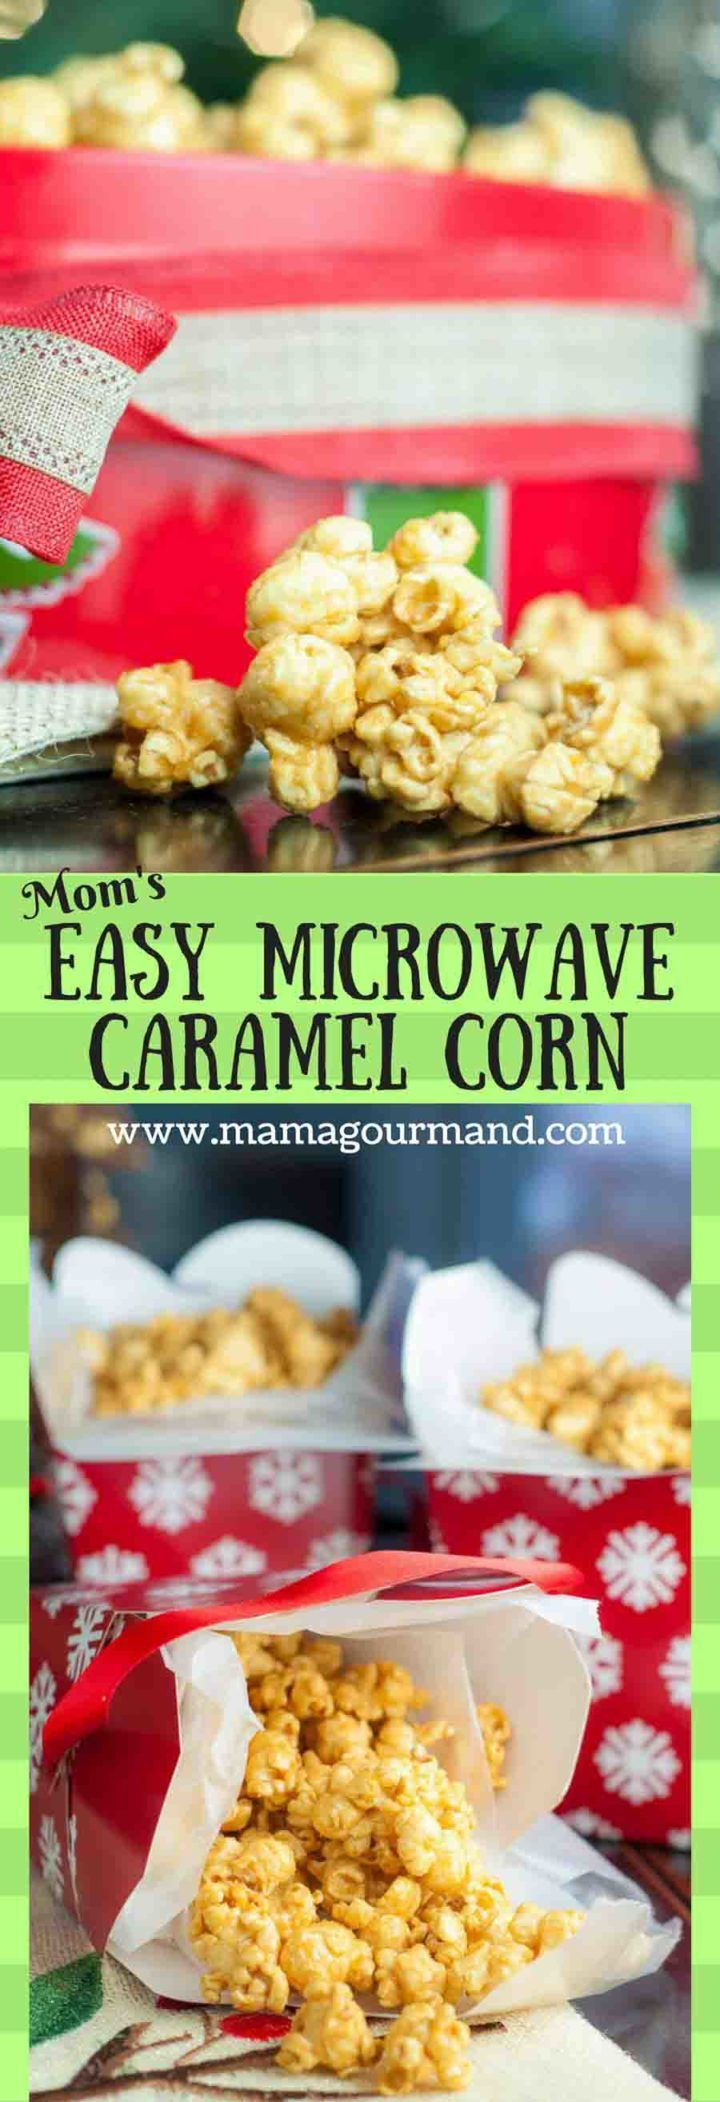 Mom's Easy Microwave Caramel Corn recipe is ridiculously quick and simple to prepare, and the best caramel corn recipe ever! www.mamagourmand.com